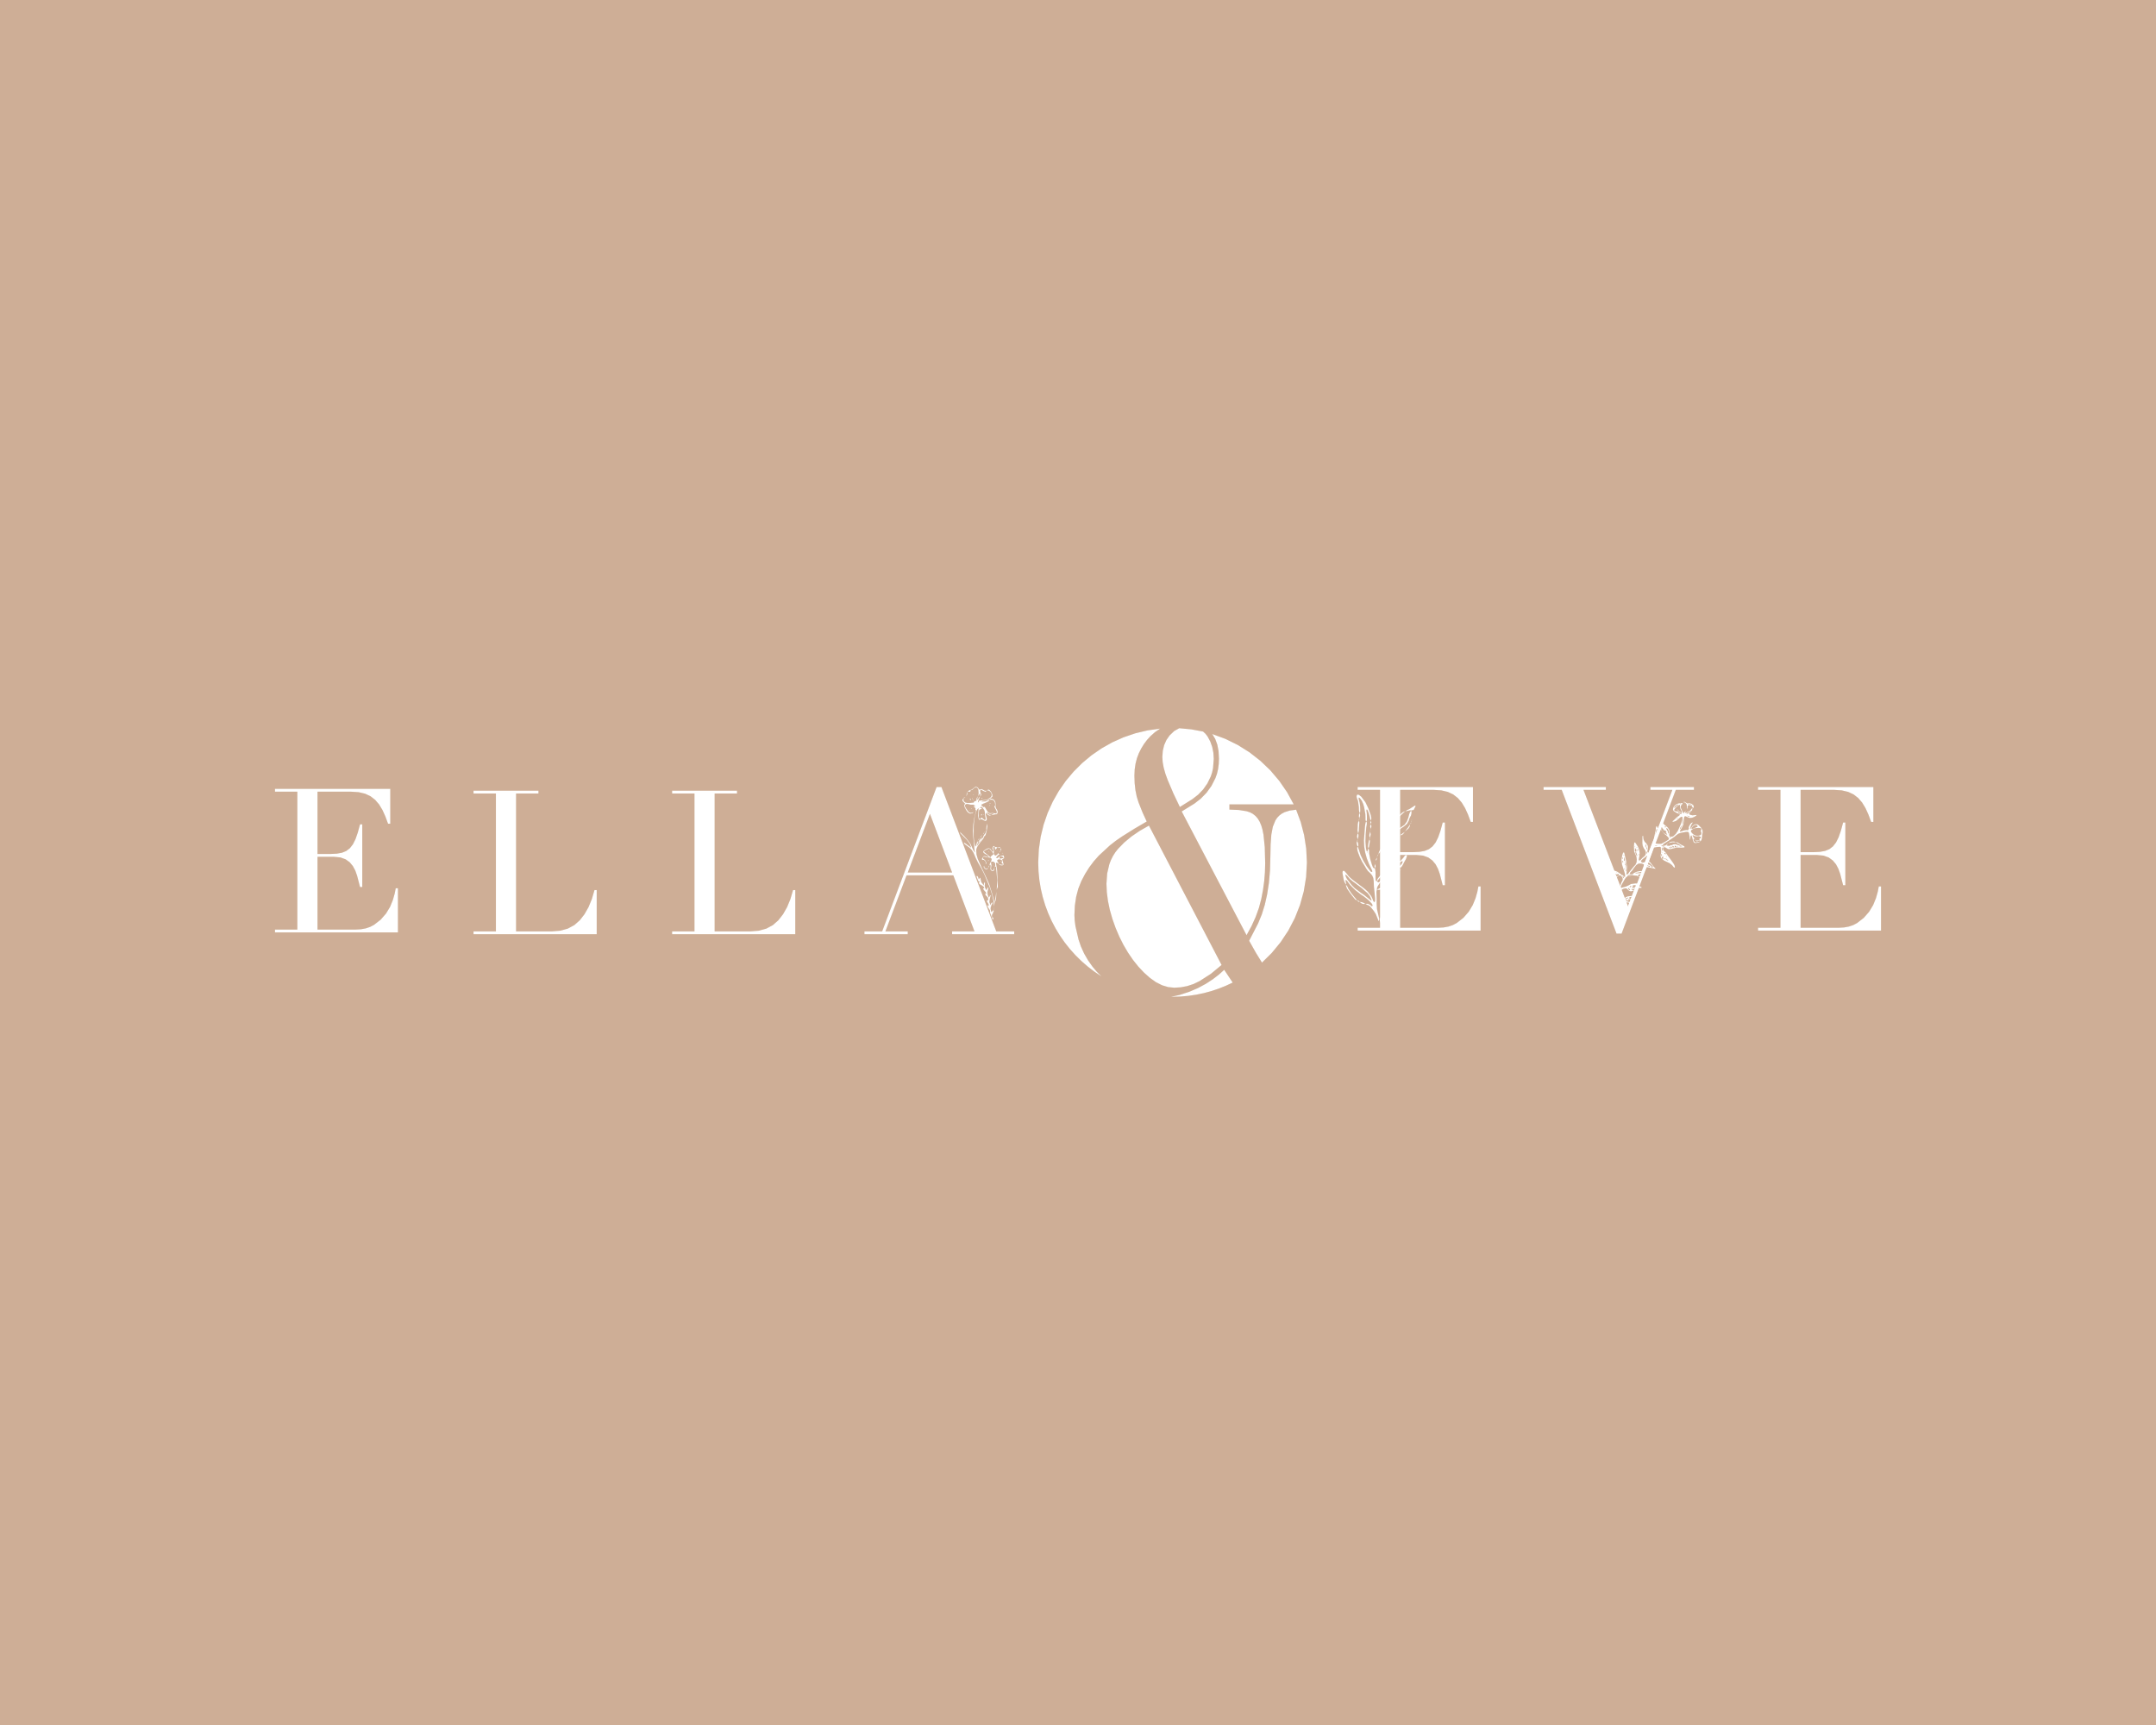 ELLA&EVE LOGO in beige brown